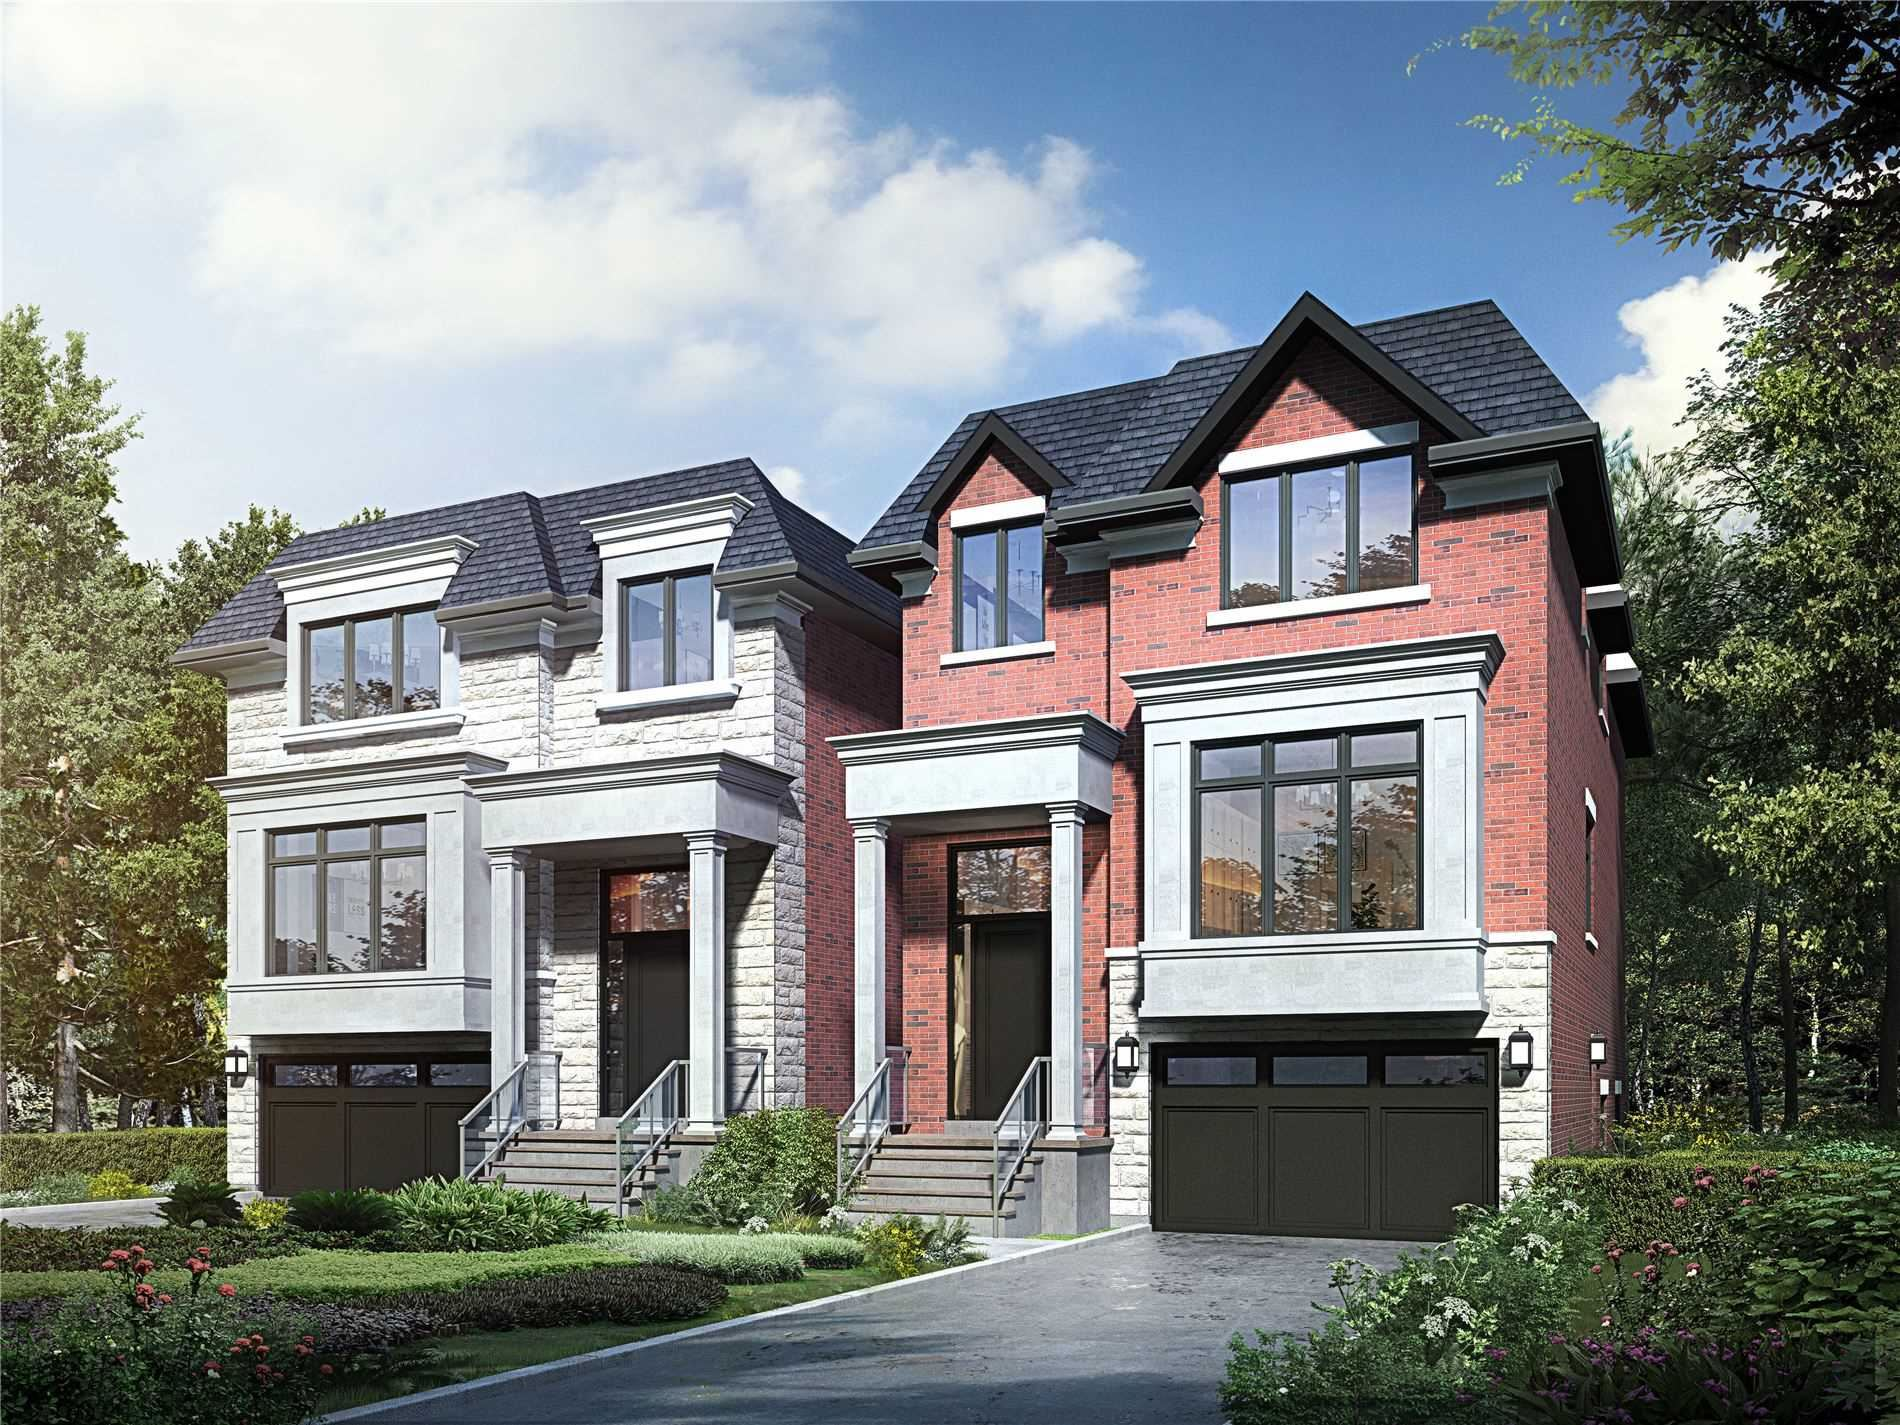 3161A Bayview Ave, Toronto, ON M2K1G2 - MLS#: C5248264